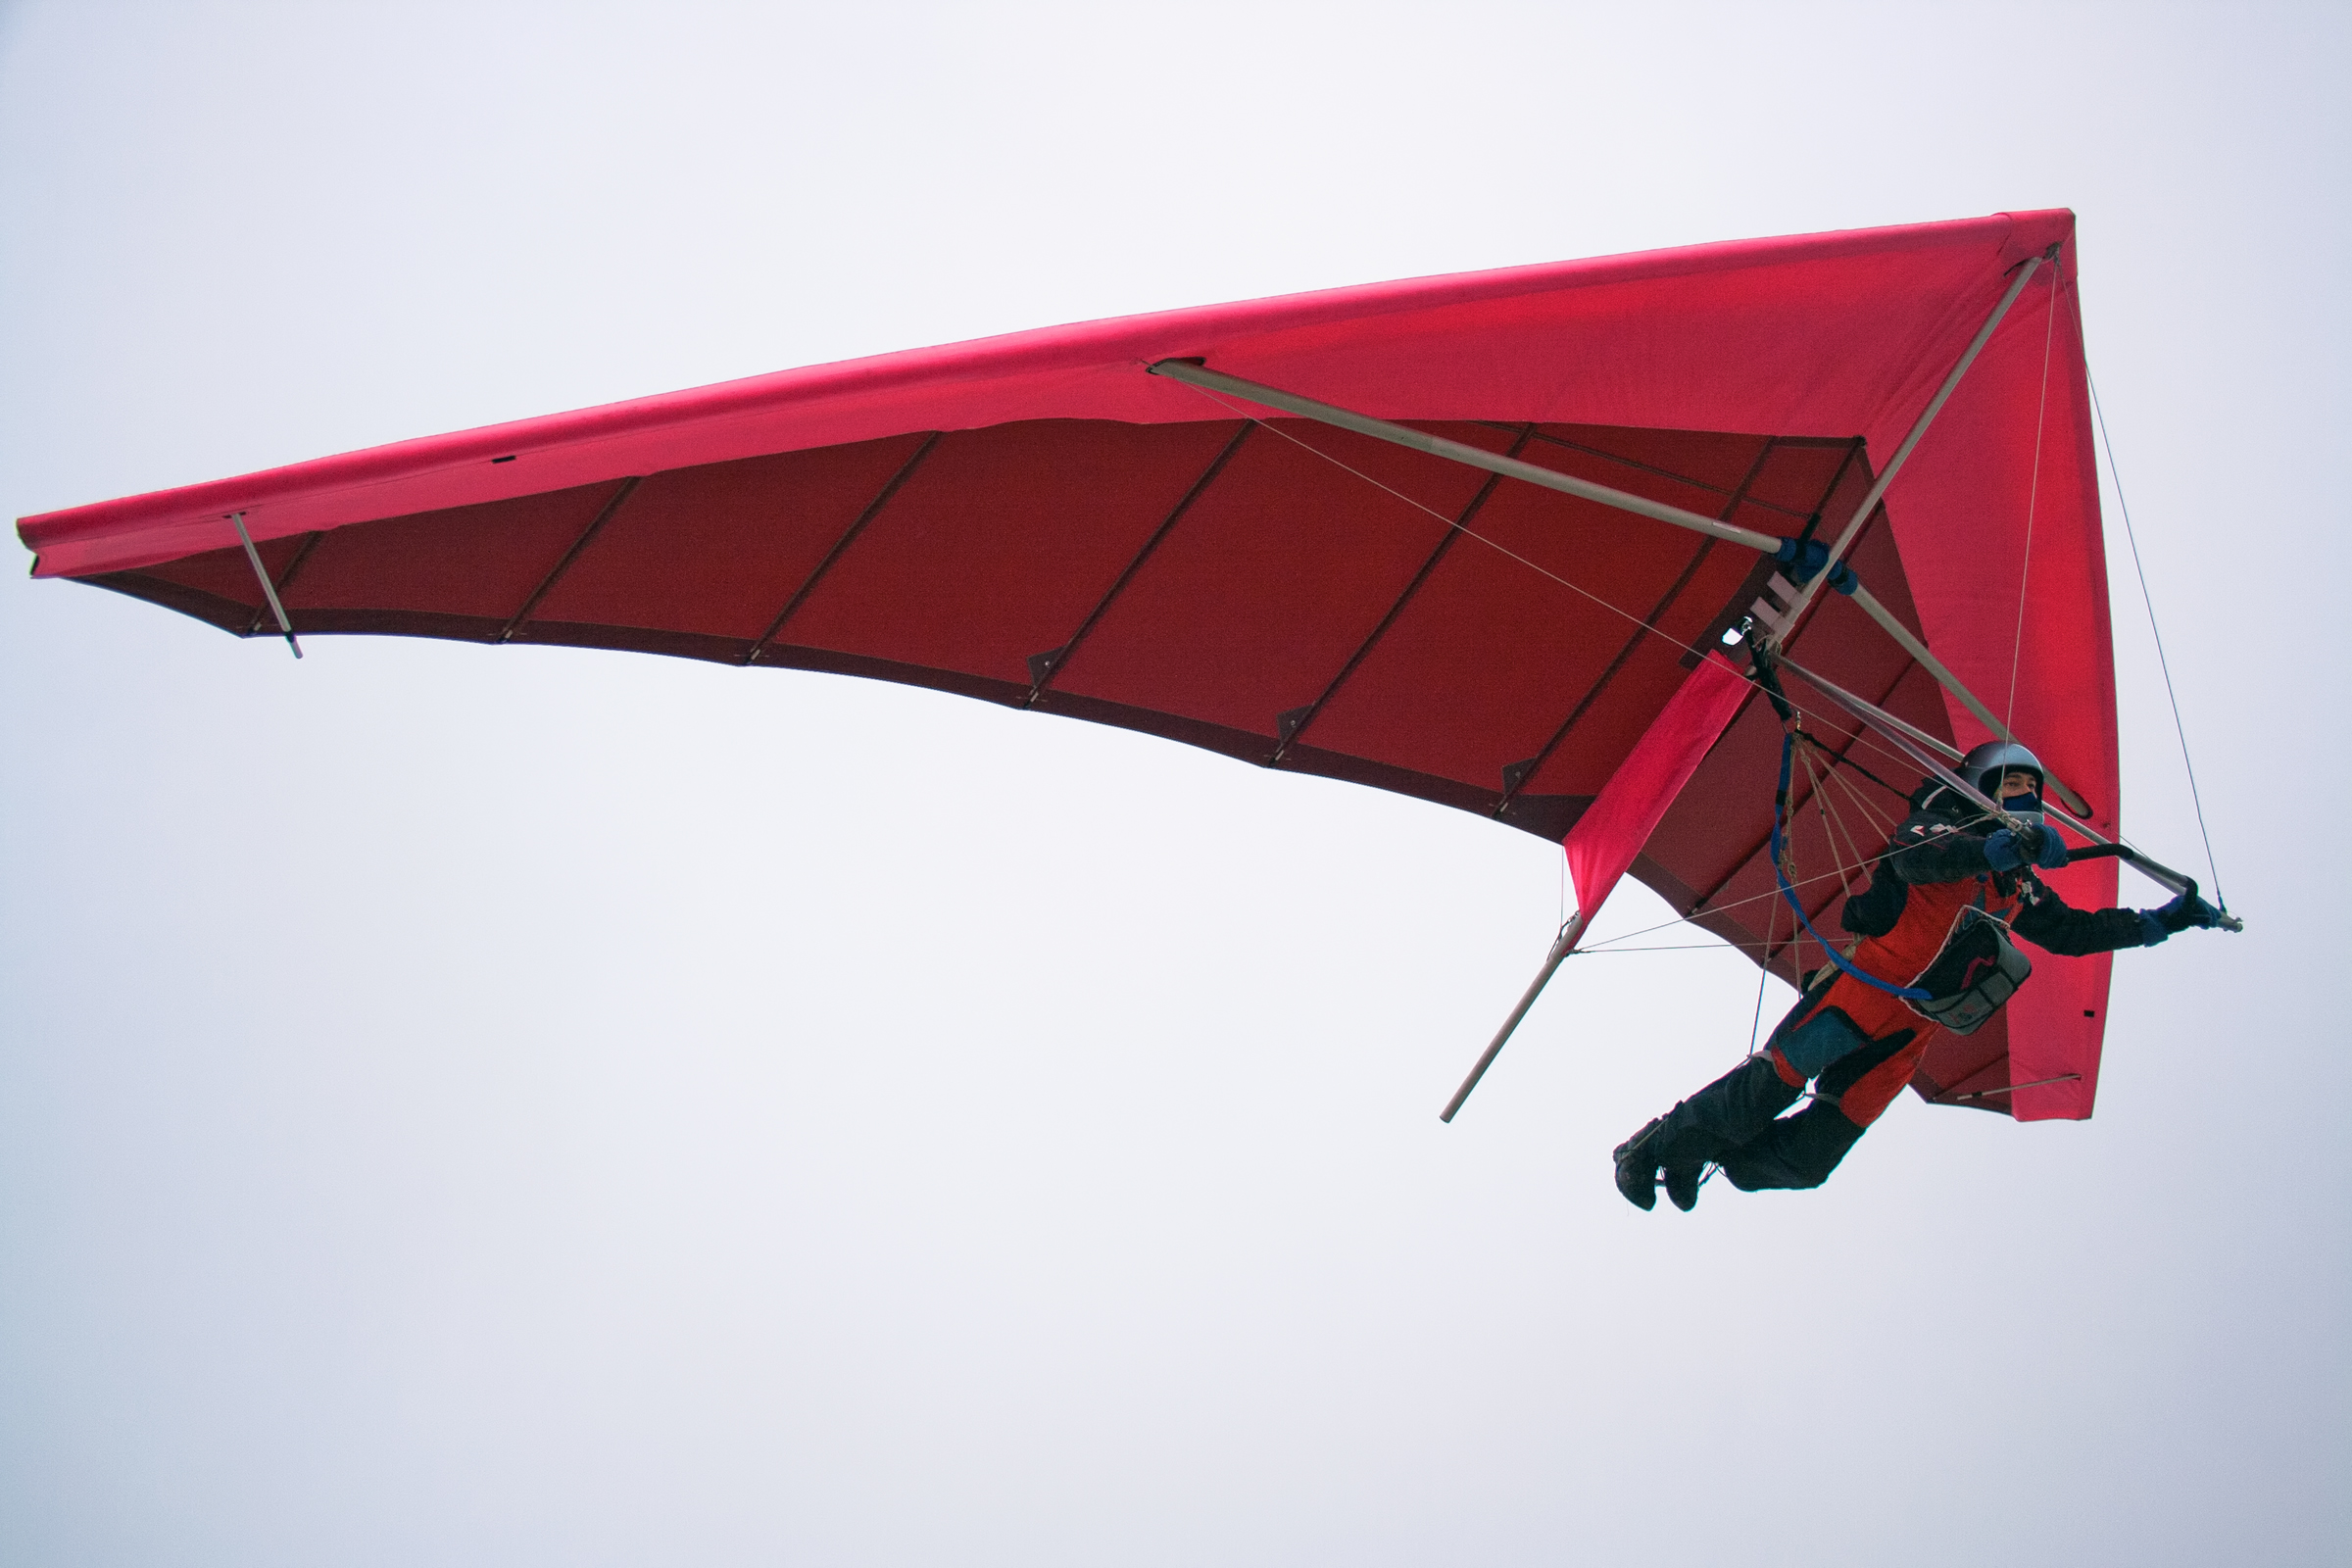 Hang Gliding in Ohio